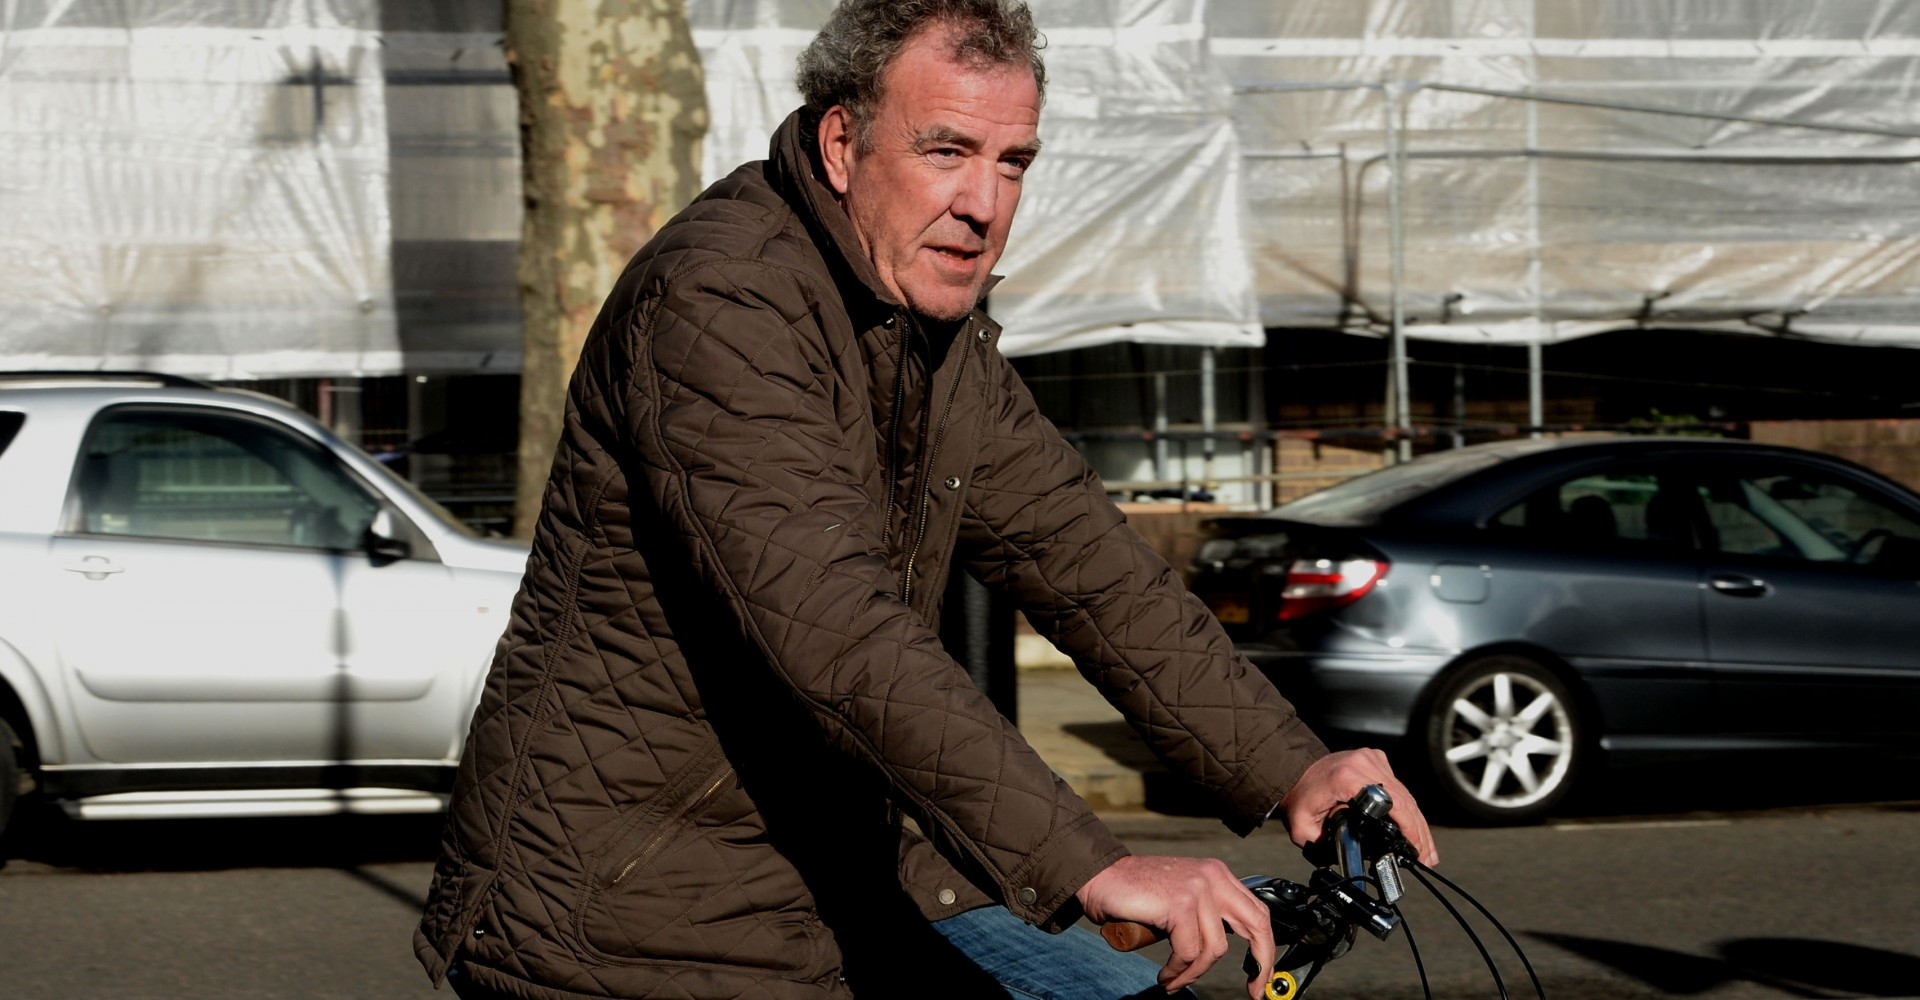 Clarkson's Fracas Immortalised With A Commemorative Plaque